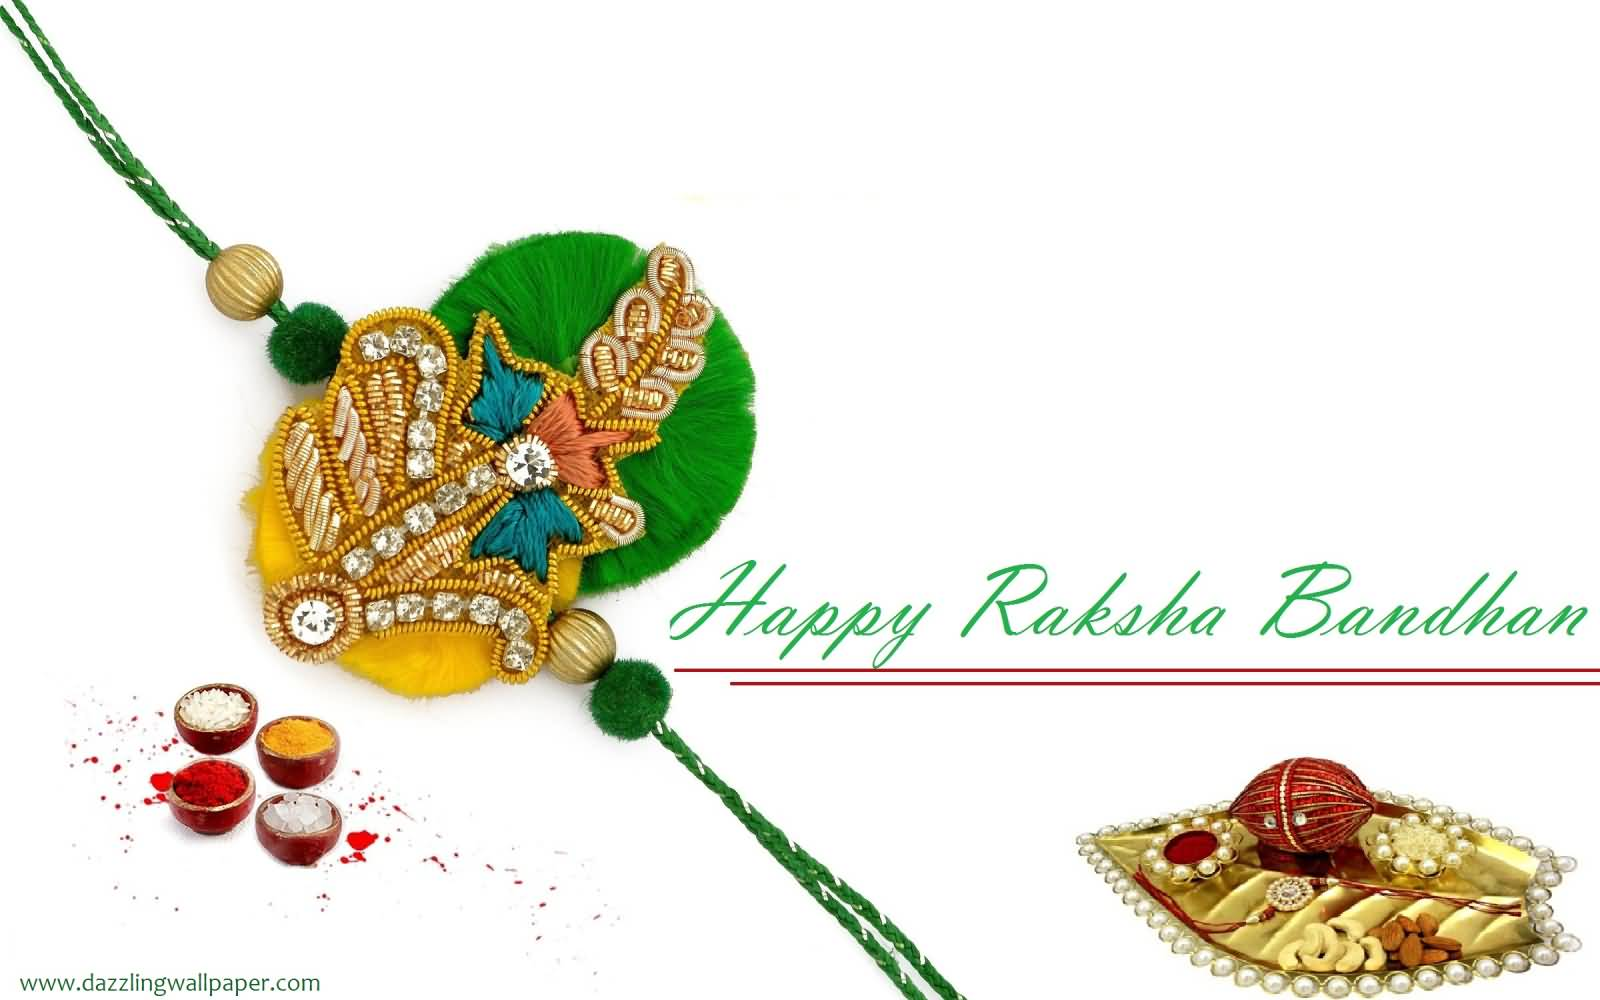 Happy Raksha Bandhan Wishes To You